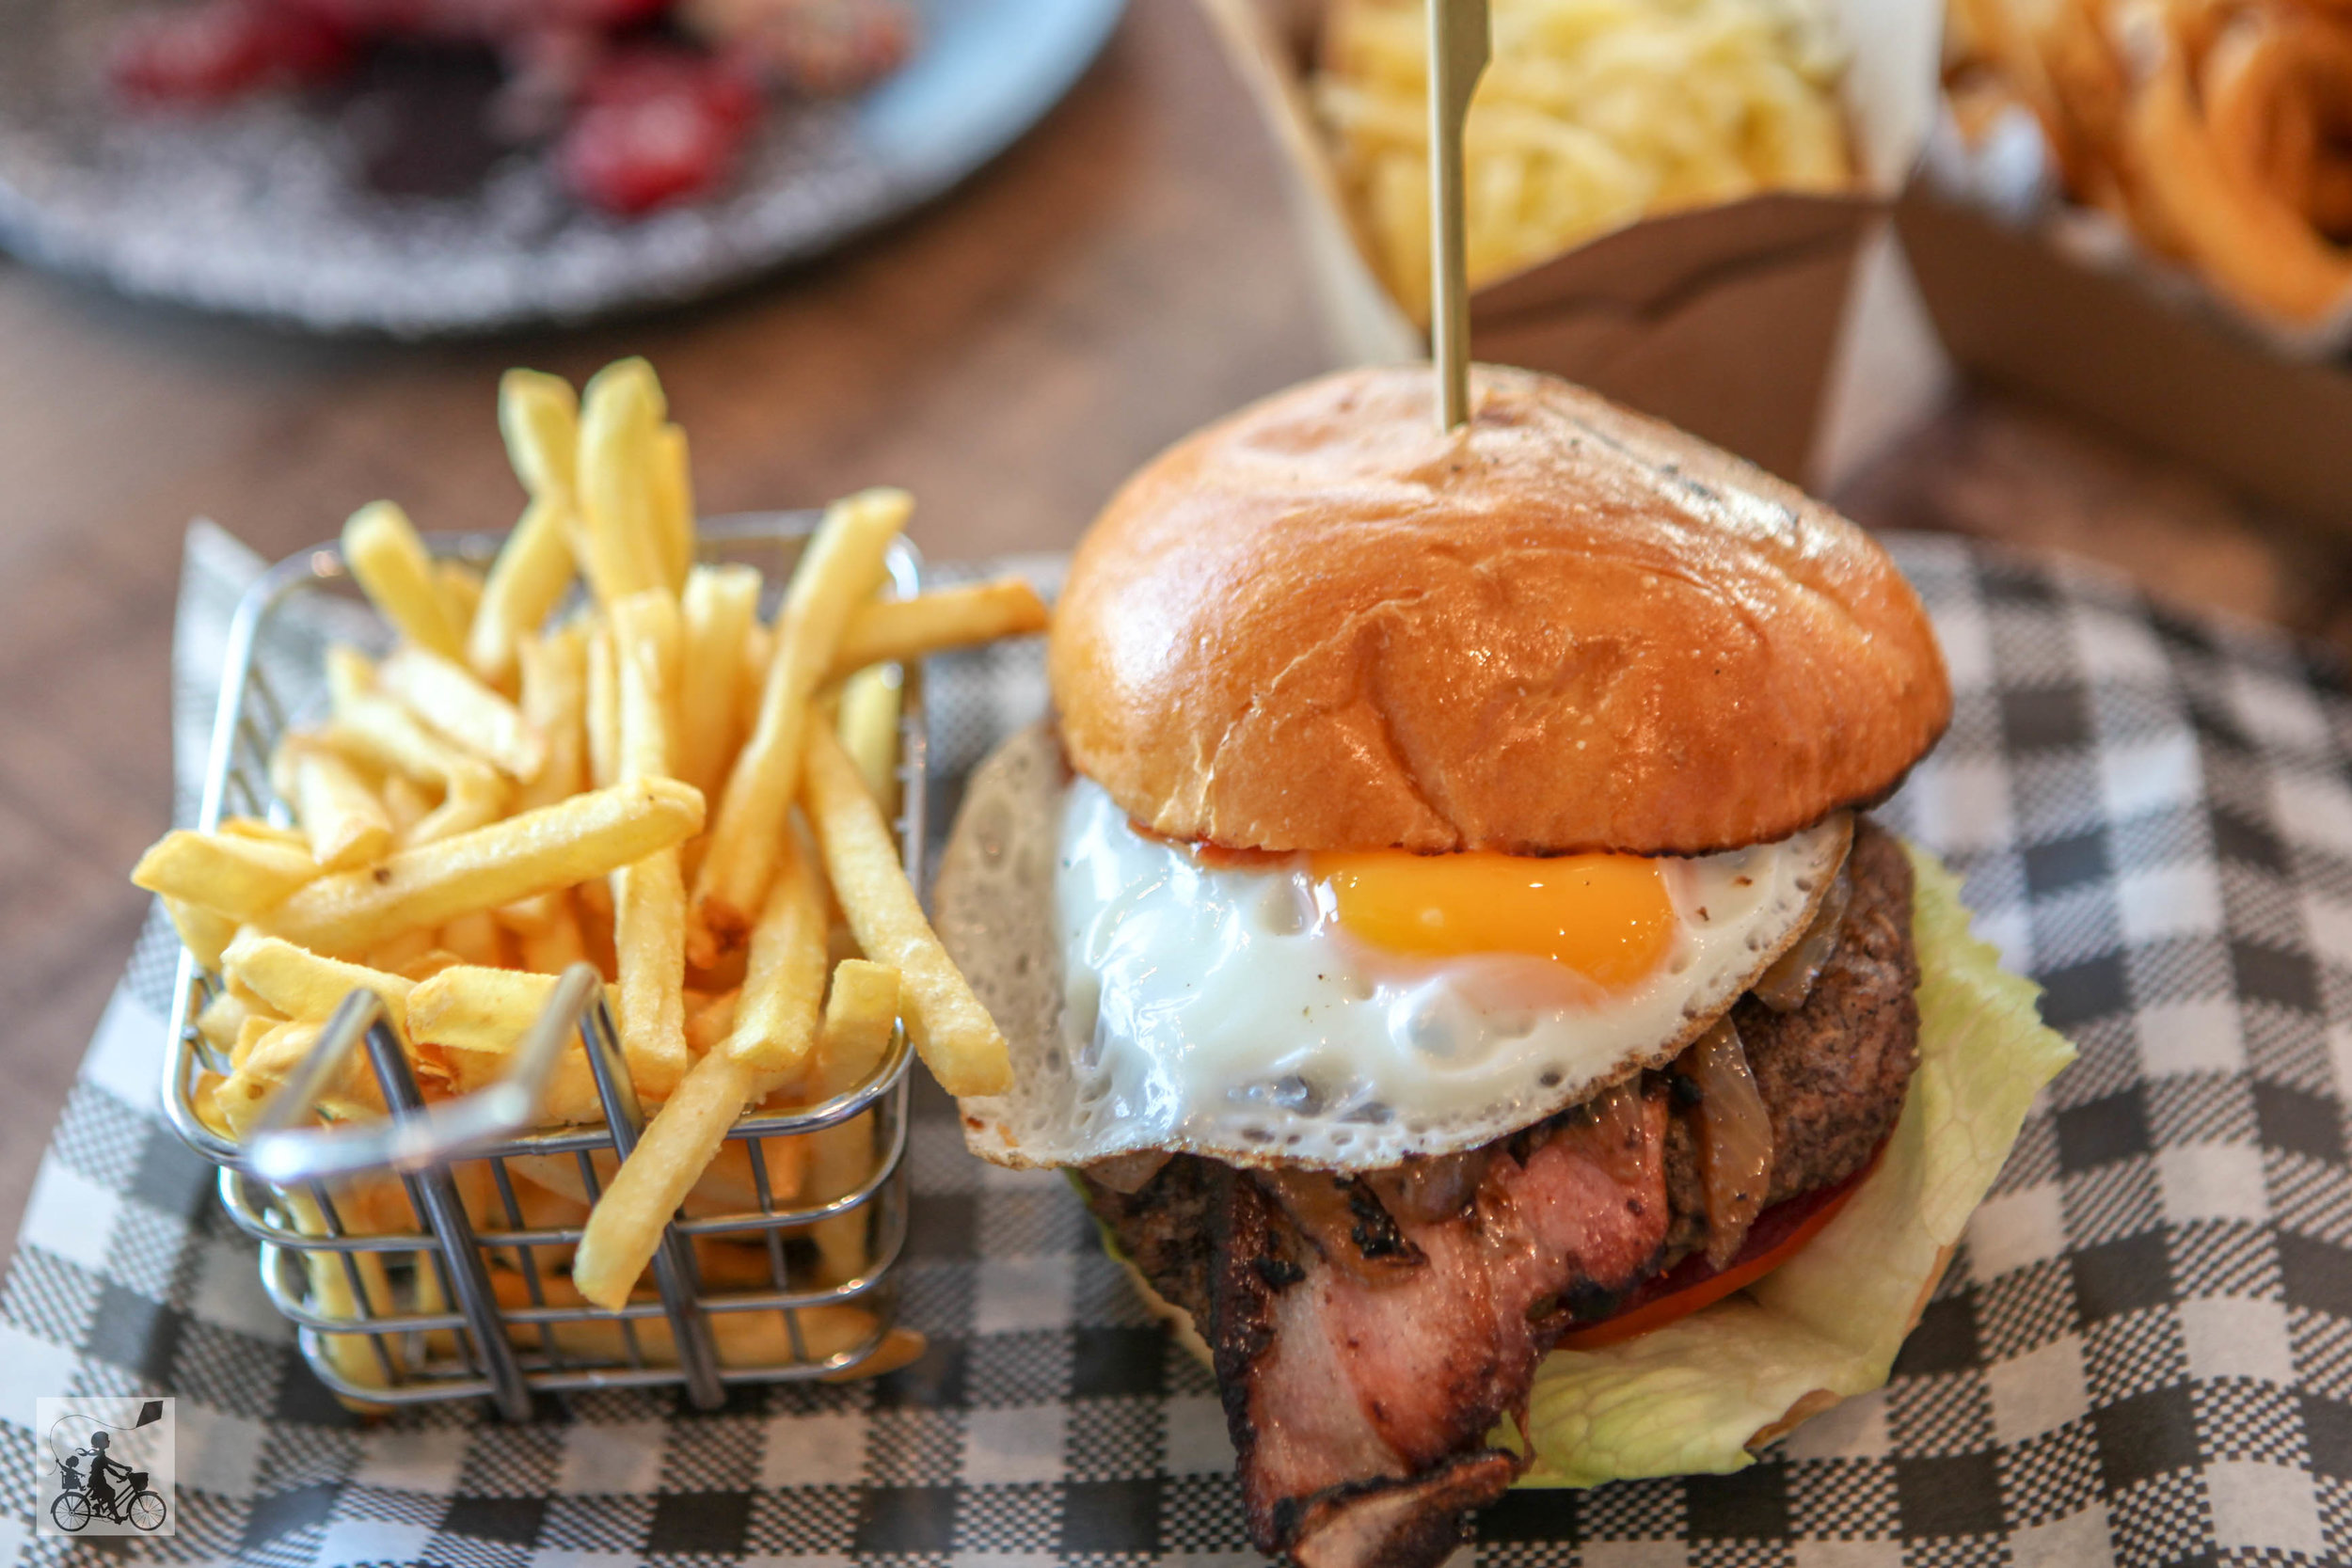 Burger Days - Mamma Knows South (21 of 25).jpg